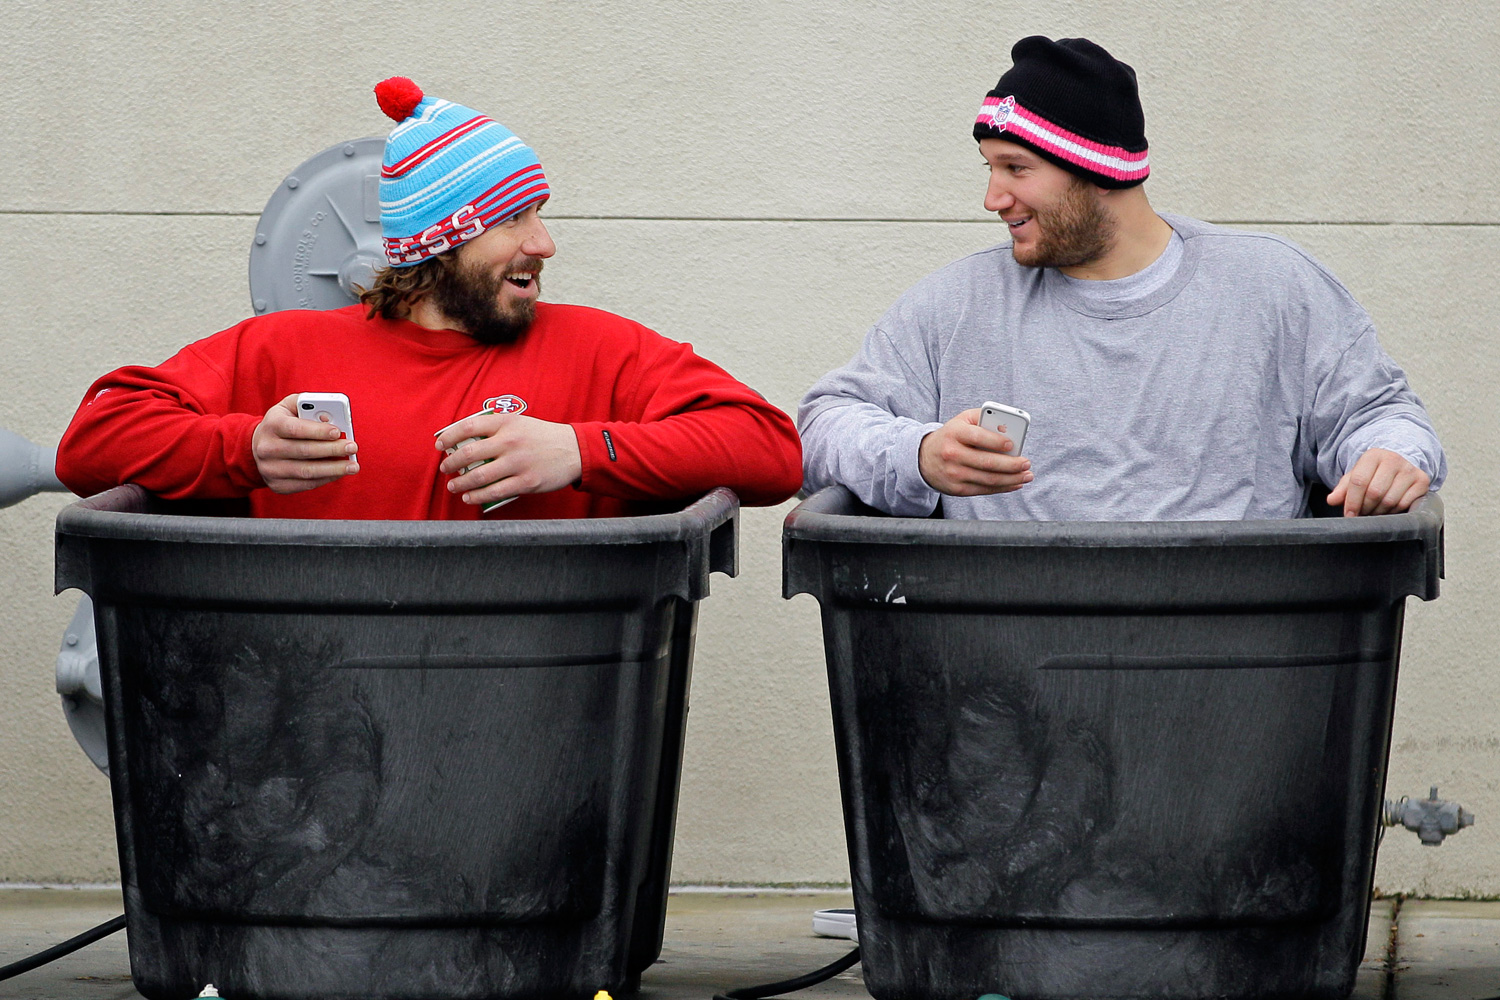 San Francisco 49ers guard Adam Snyder (L) and linebacker Blake Costanzo (R) take an ice bath after their practice in Santa Clara, California. The 49ers were preparing for their NFC Championship game against the New York Giants in late January 2012.